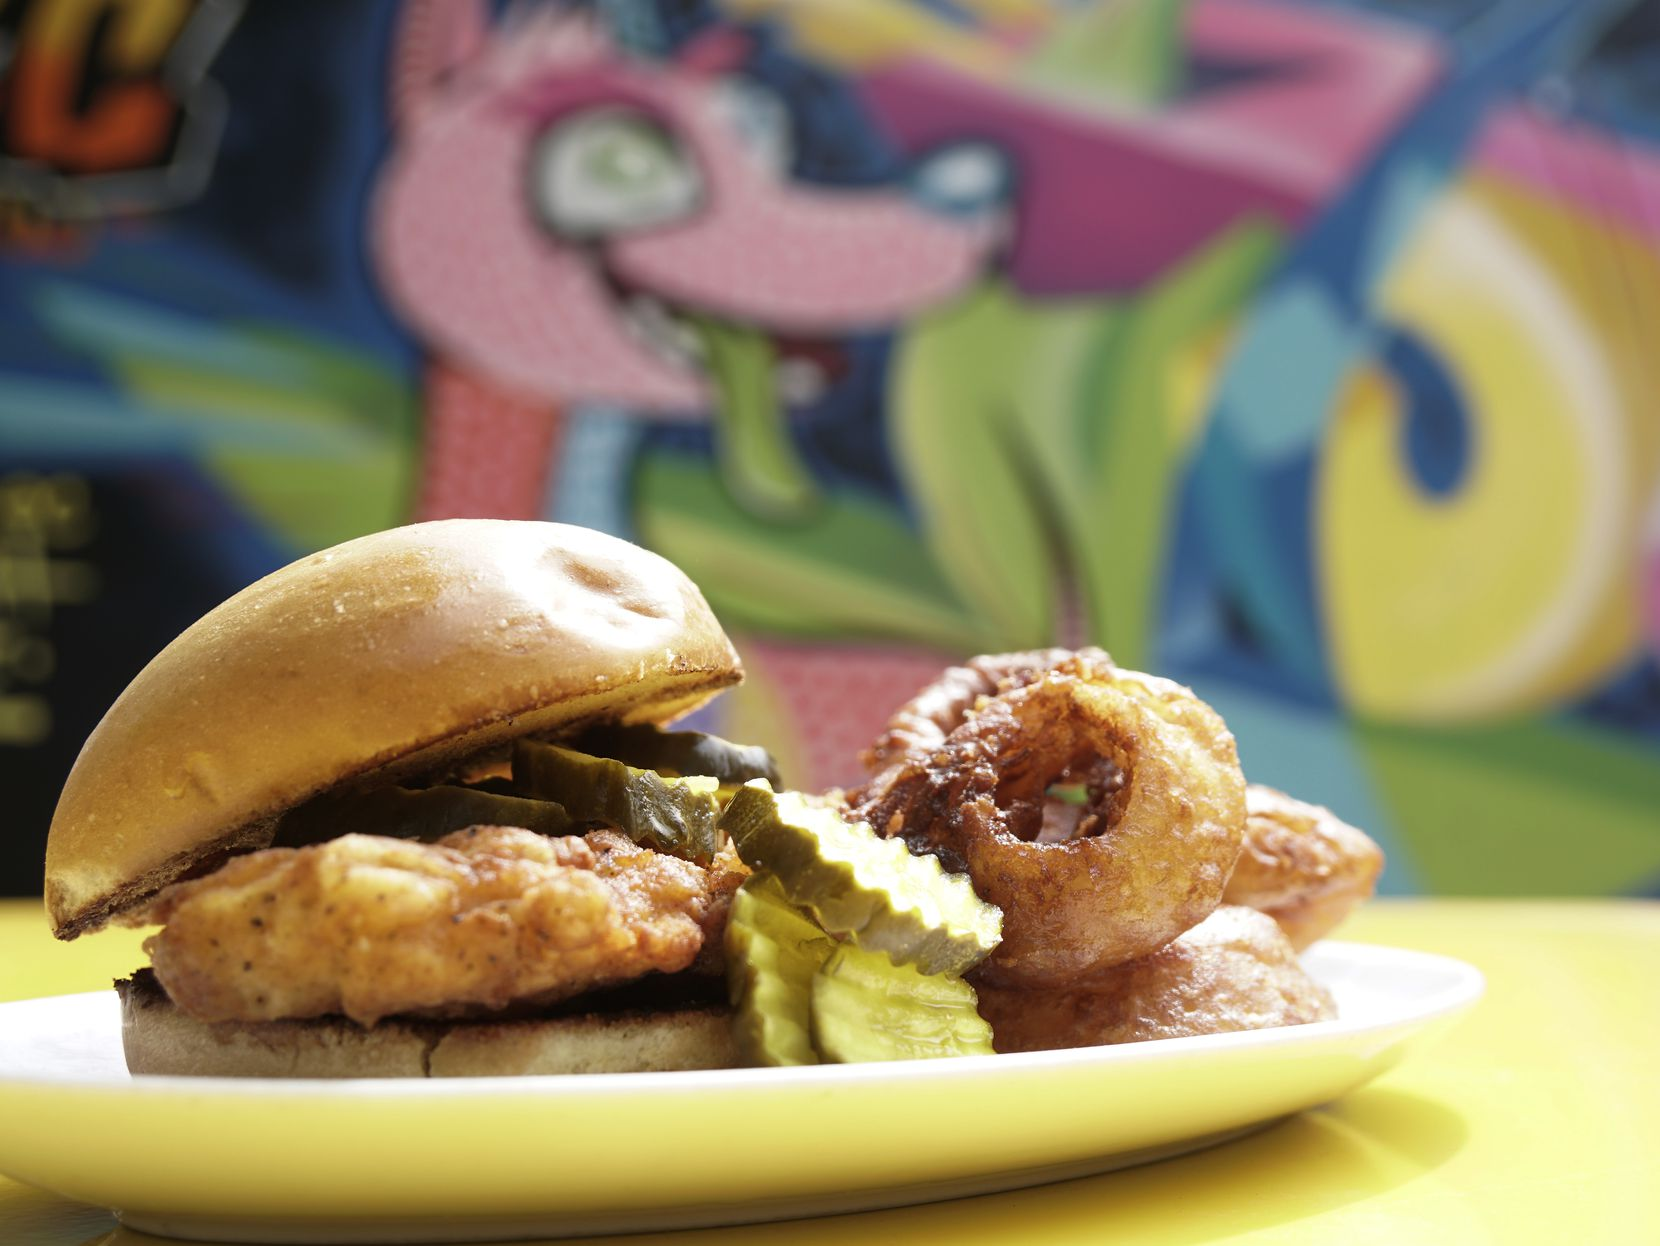 The Chicken Sandwich will be one of the dishes available in the beer garden at Trinity Groves in Dallas.